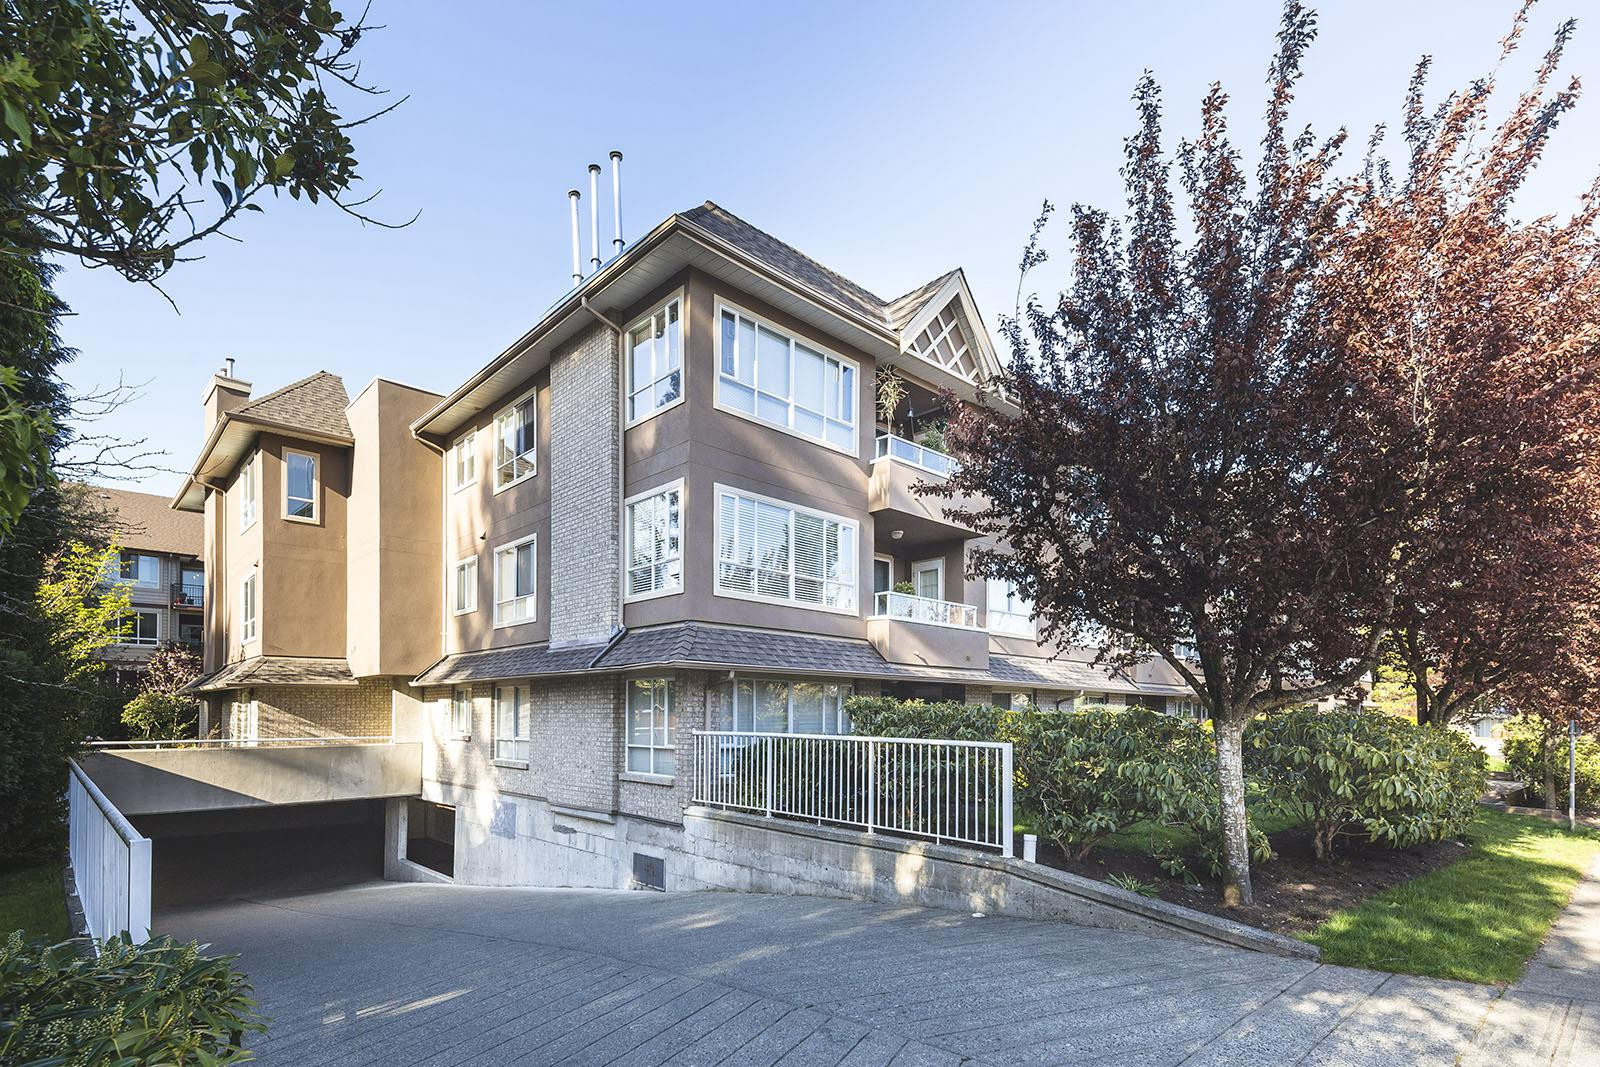 Carmel Place at 15375 17 Ave, Surrey 0